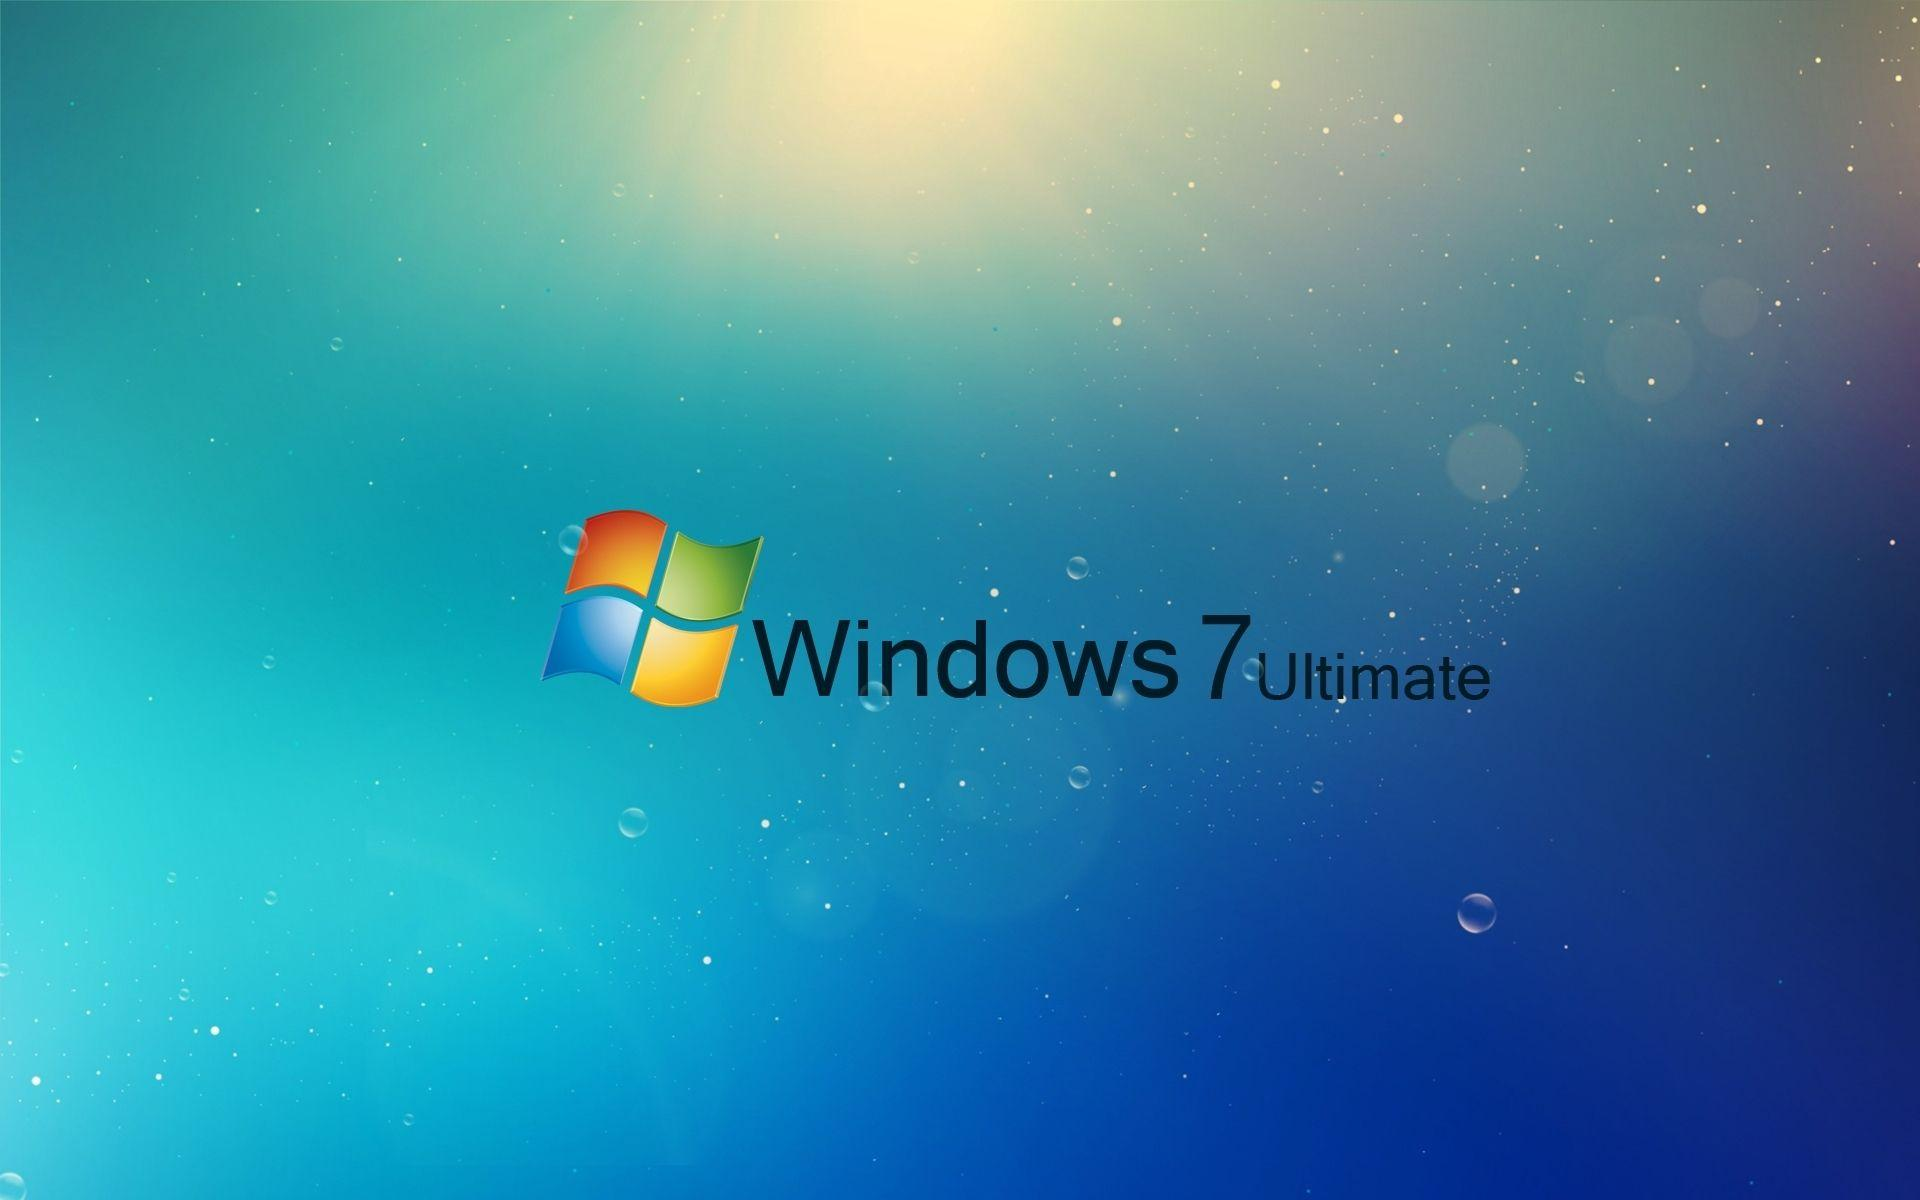 windows 7 ultimate backgrounds 64 wallpapers